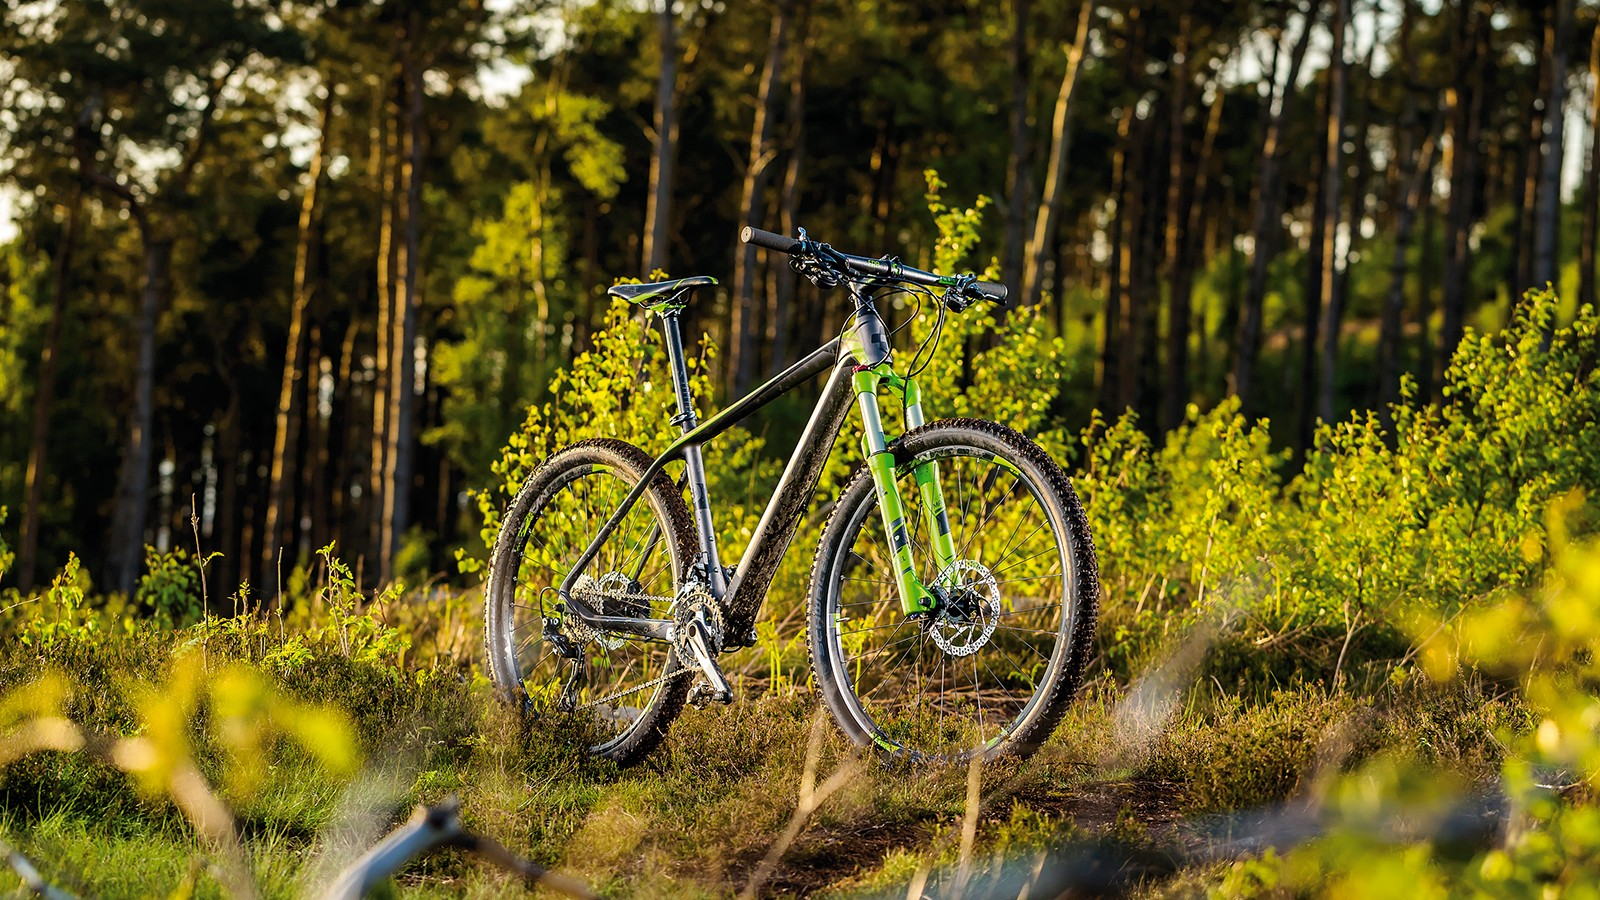 The Cube Reaction GTC Pro 27.5's quality composite frame is matched to budget aware components